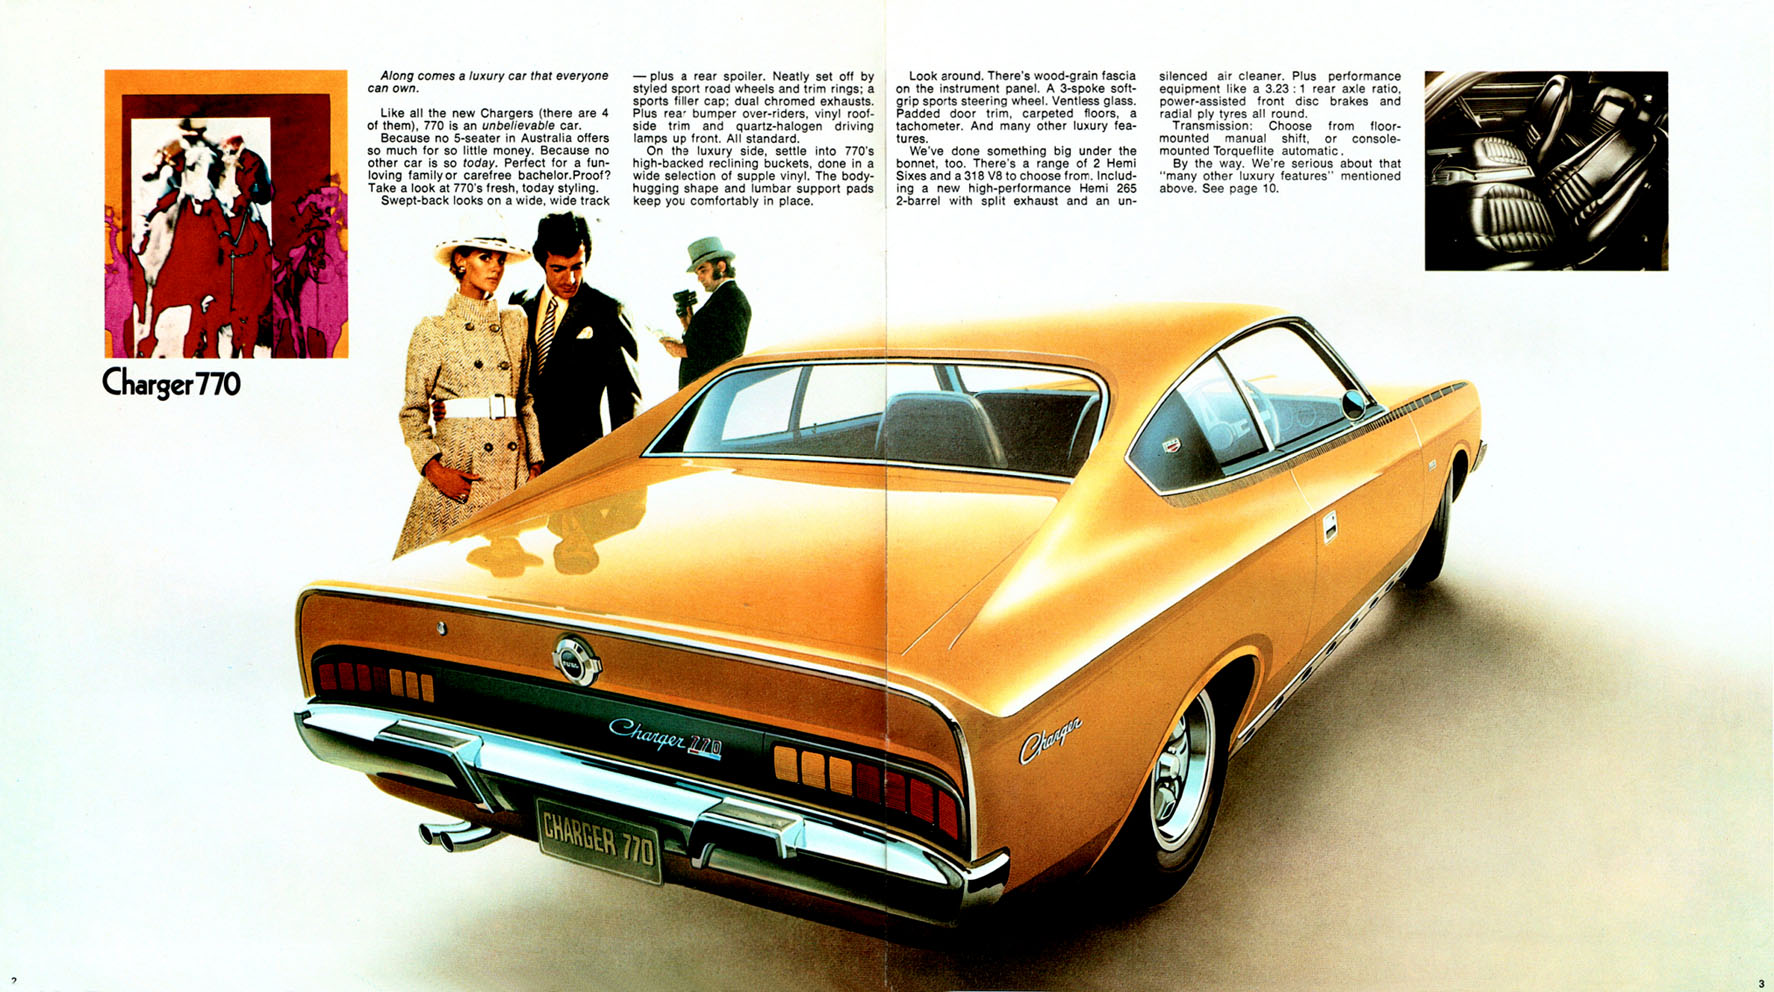 The VH Charger stunned Australia with it's rakish styling when released to a welcoming public in 1971